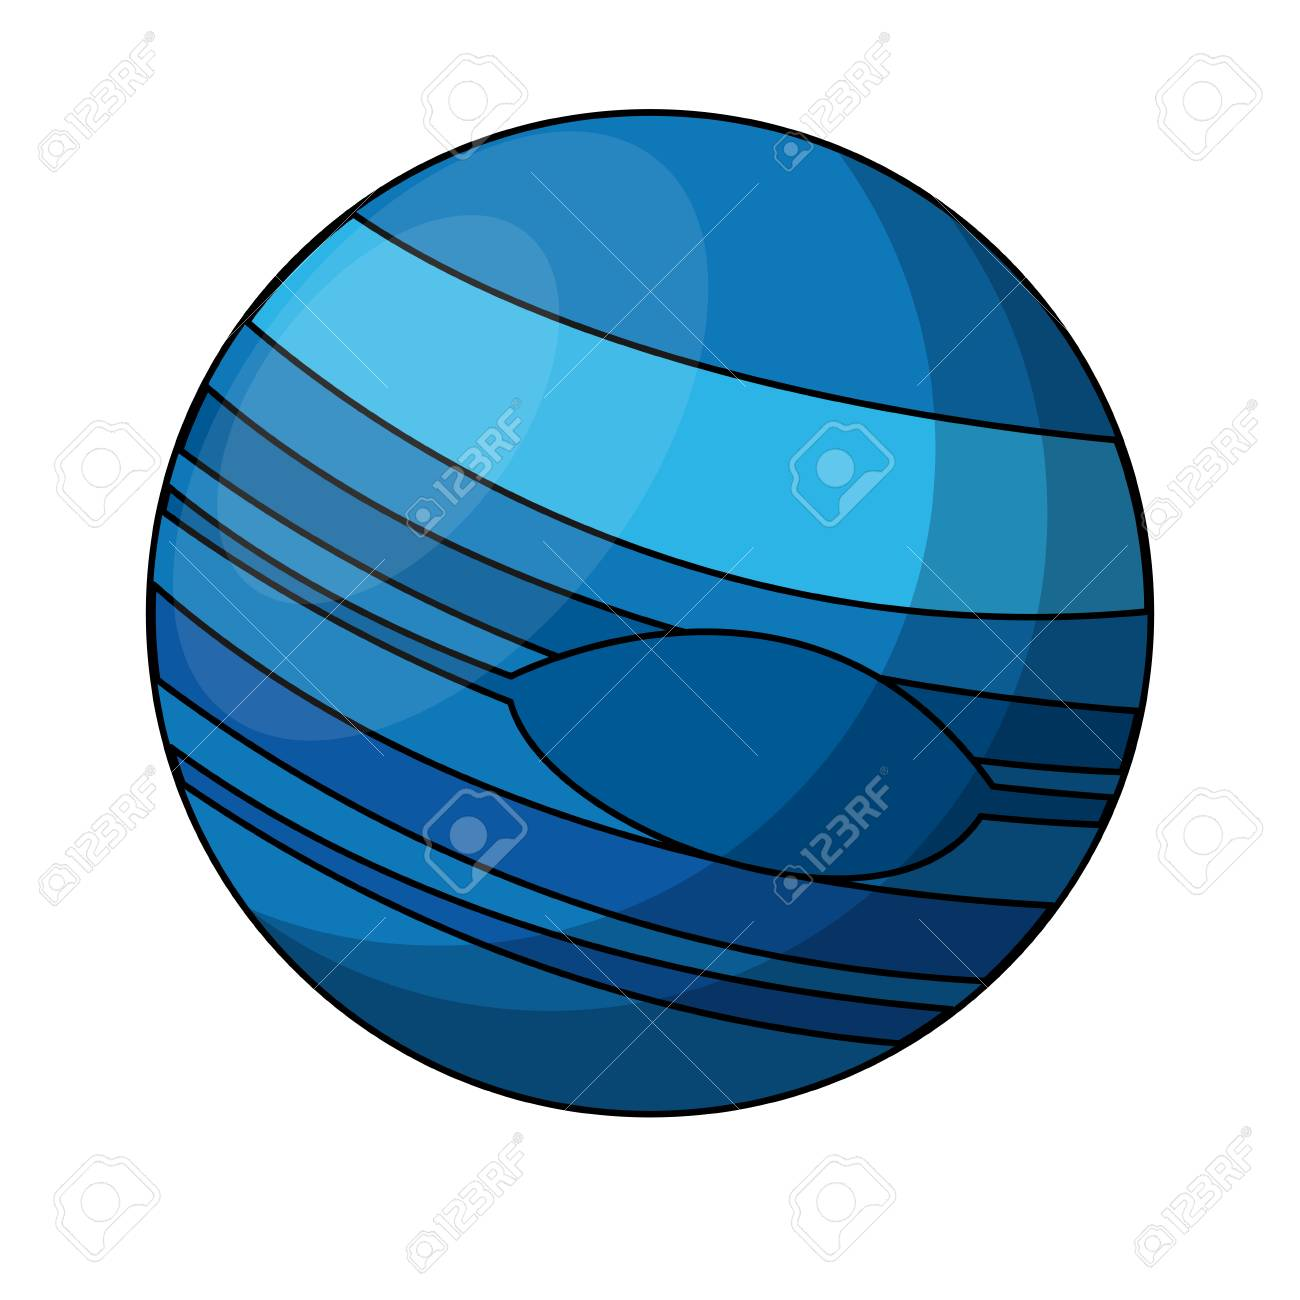 hight resolution of uranus planet icon image vector illustration design stock vector 83172843